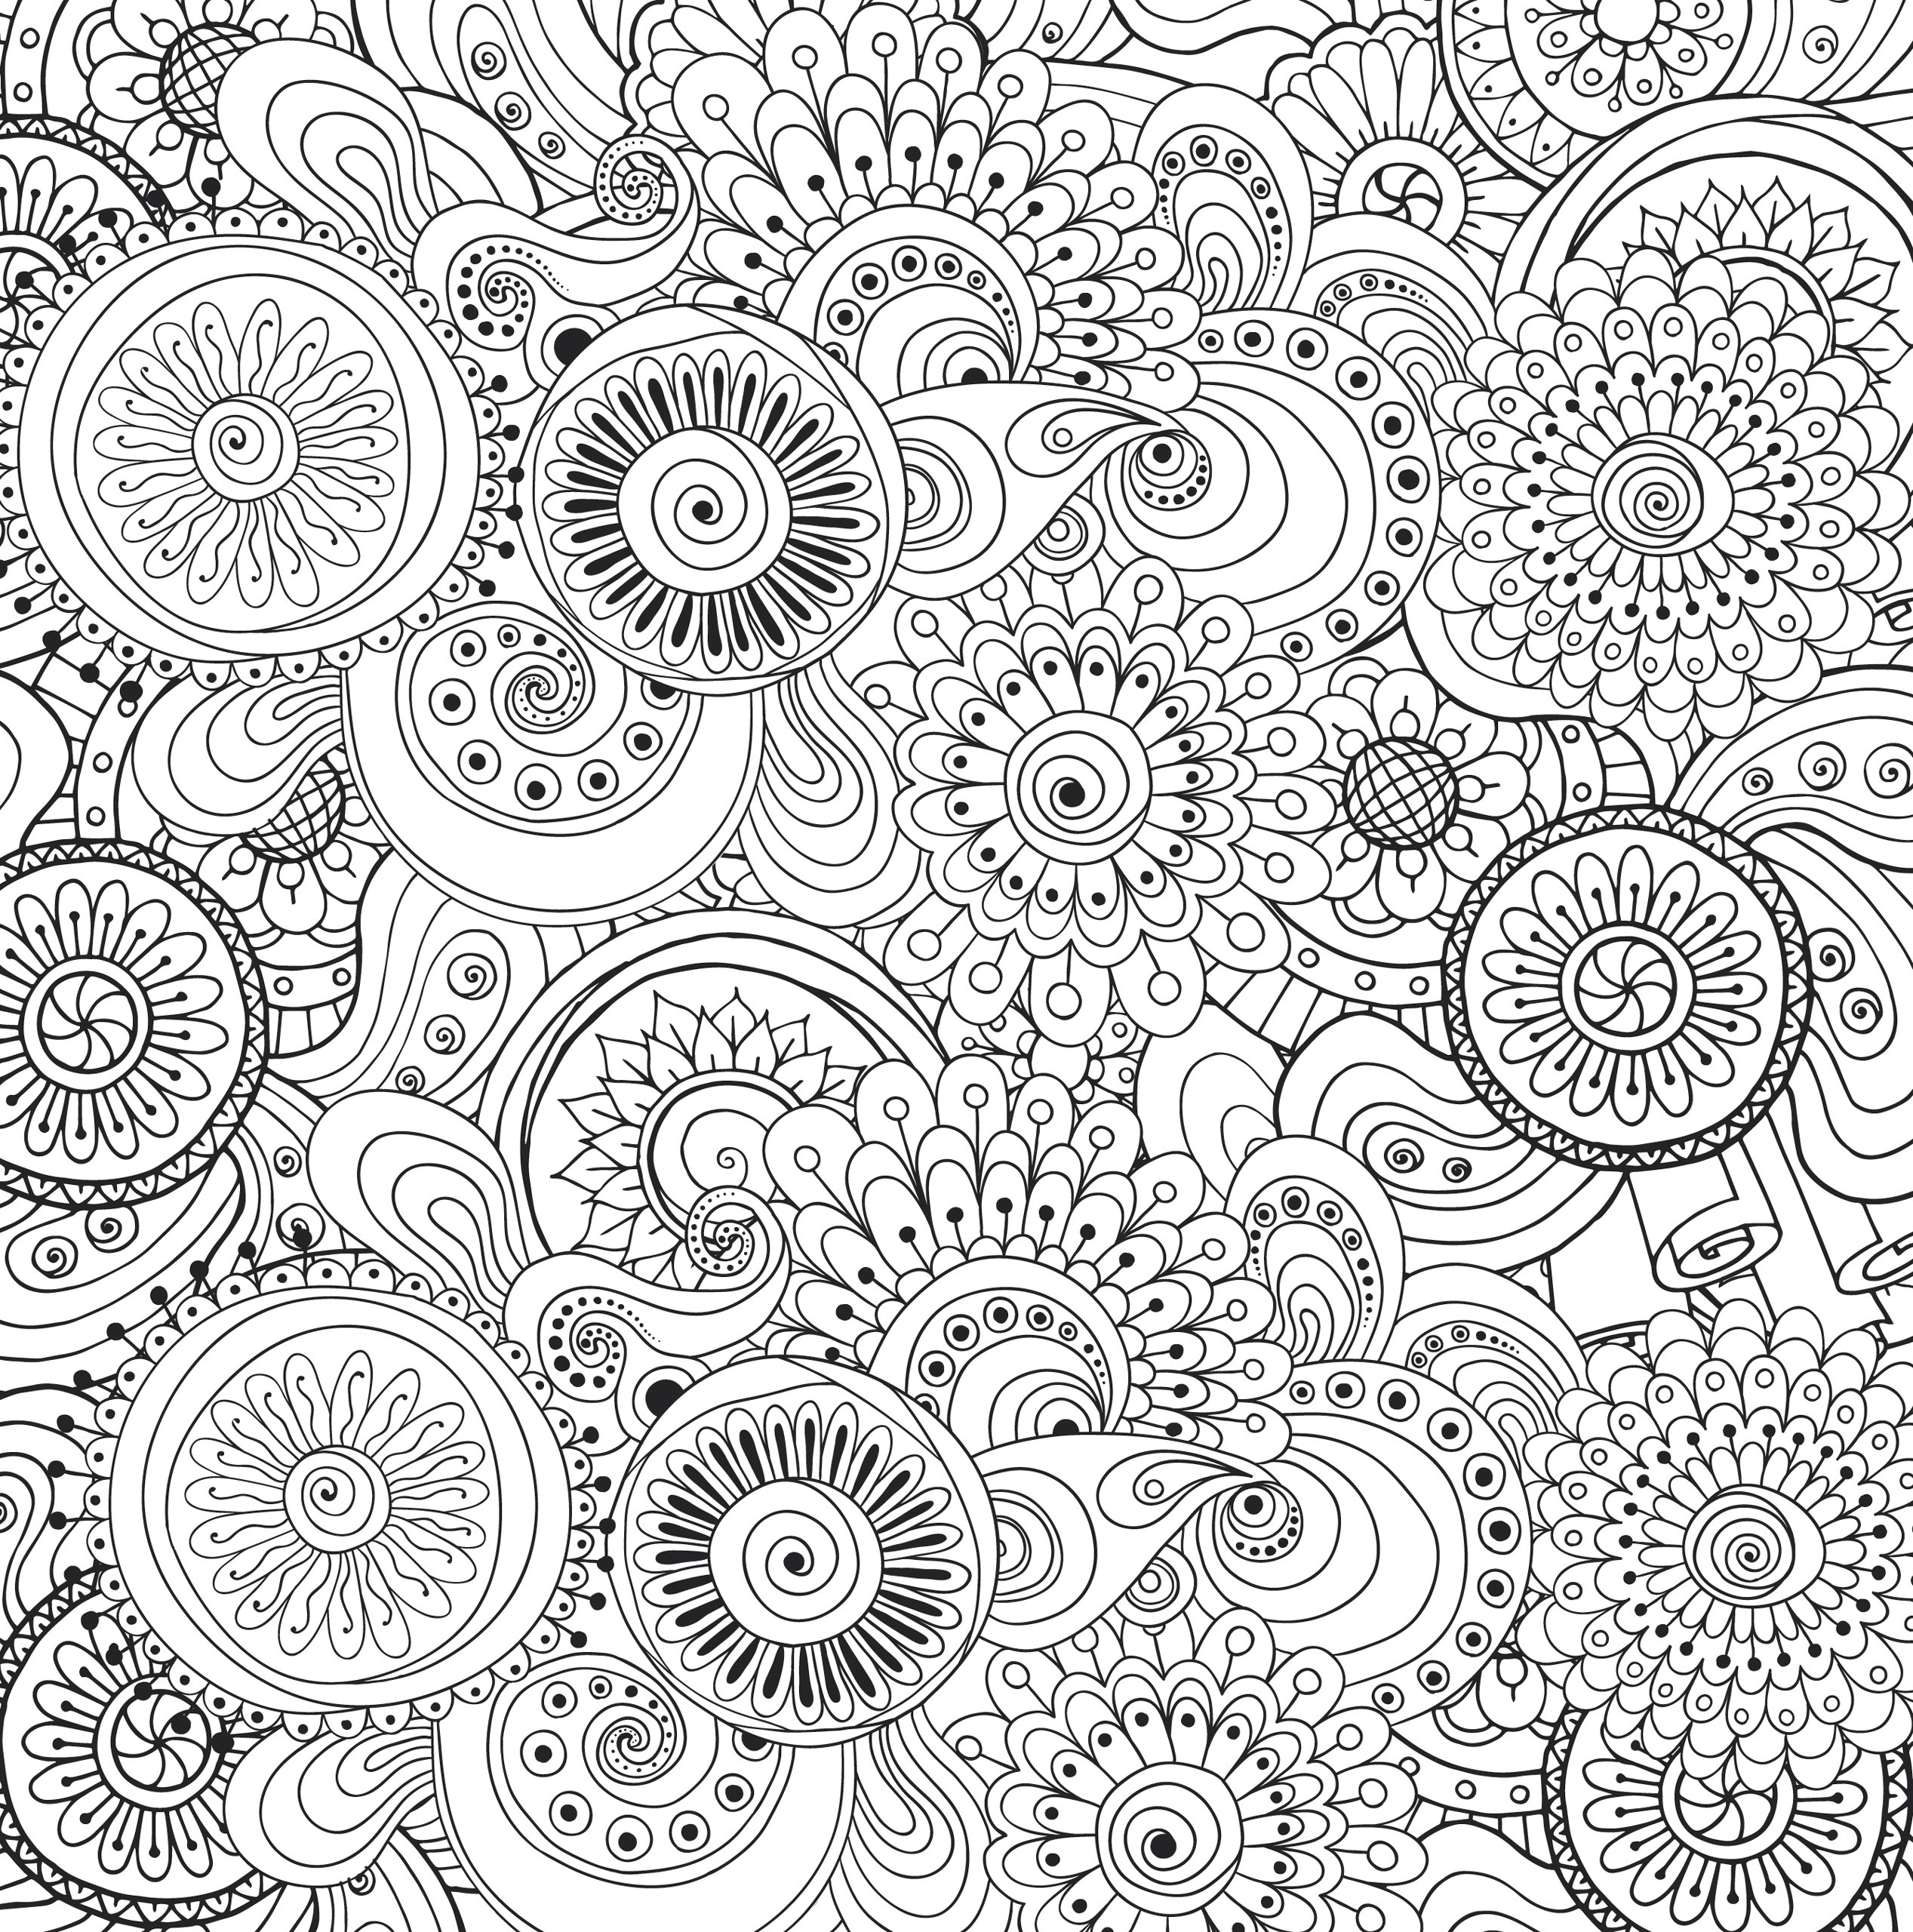 Amazon.com: Peaceful Paisleys Adult Coloring Book (31 stress ...